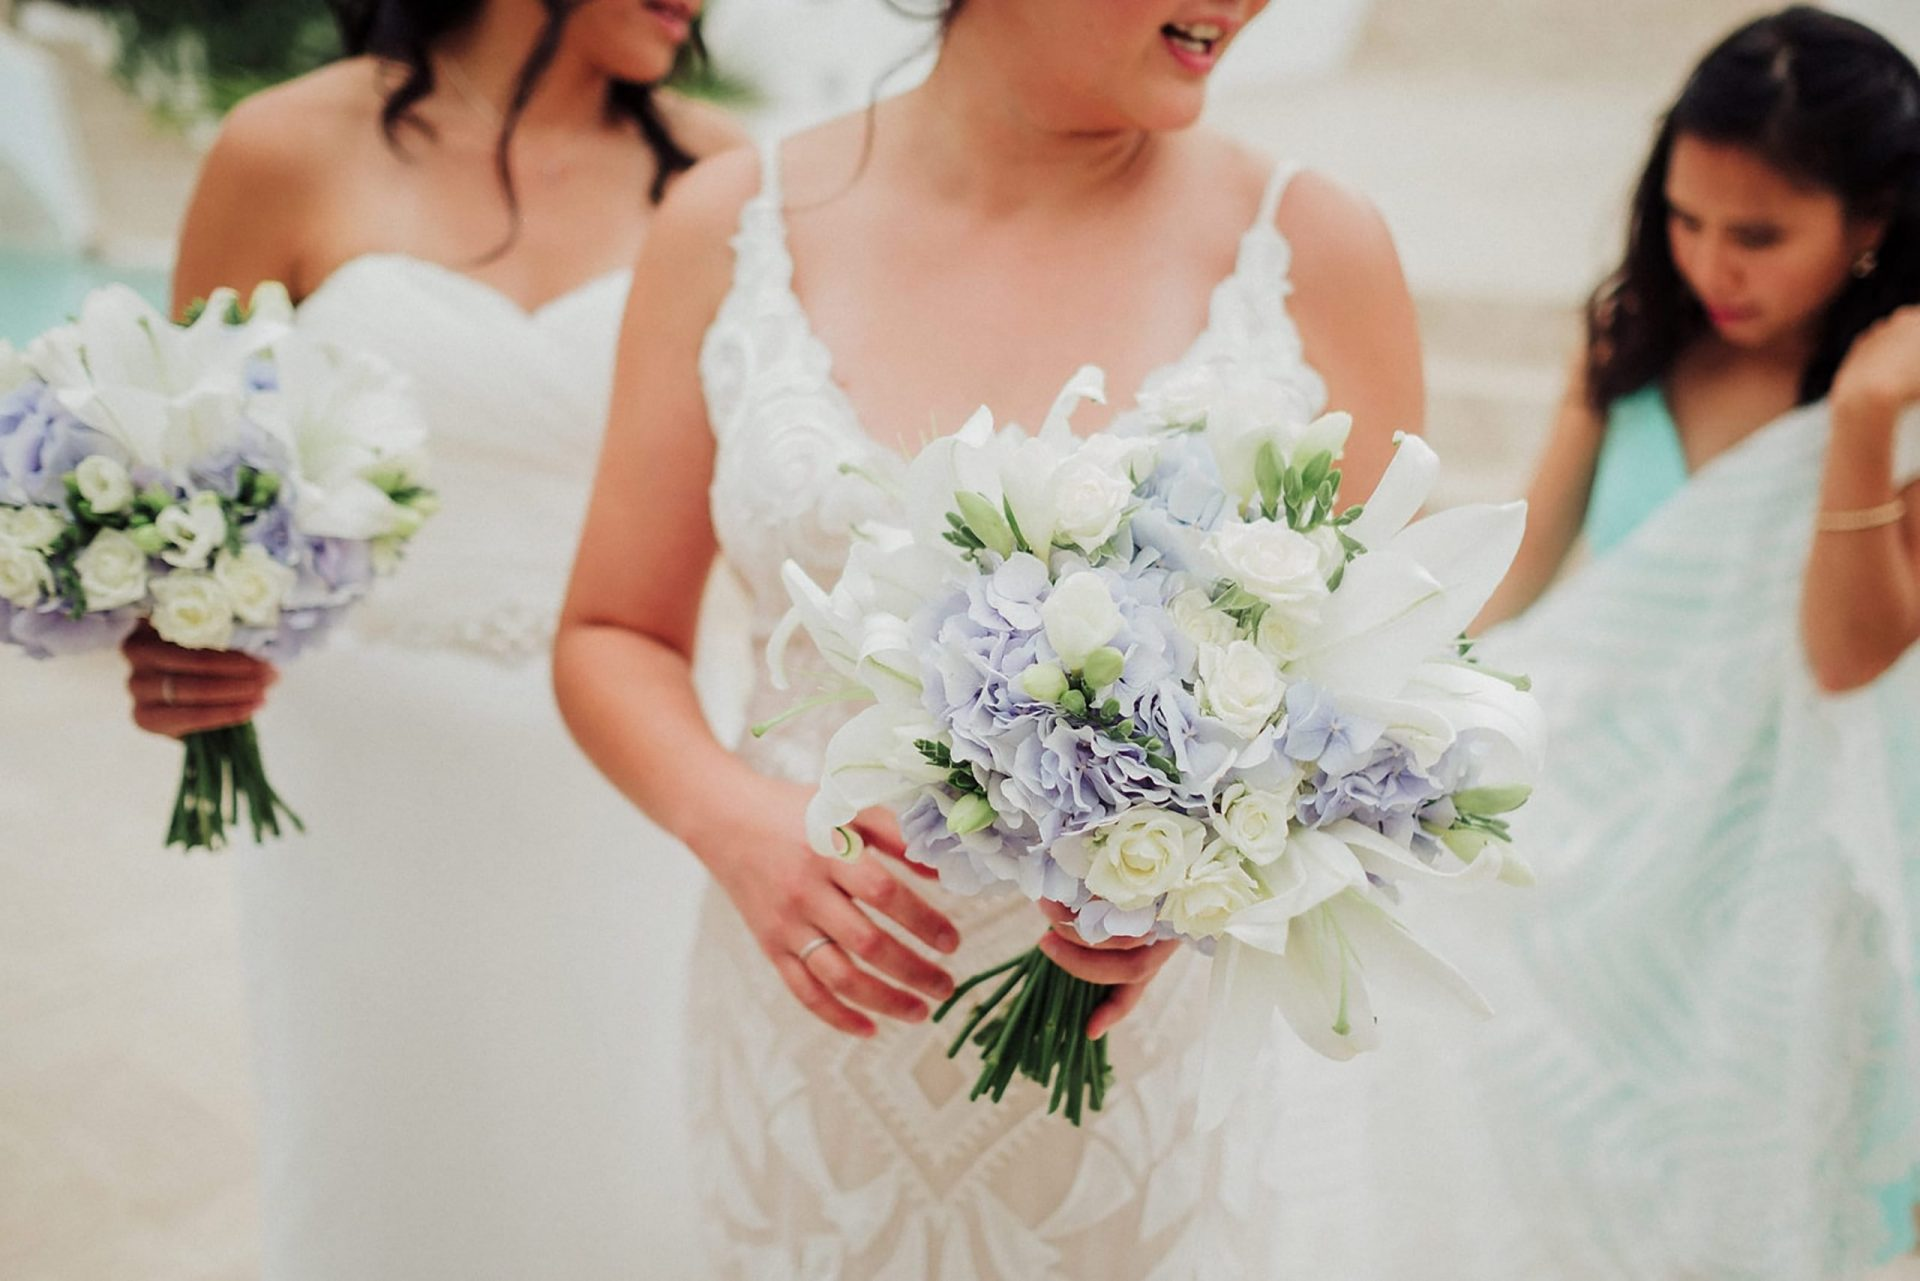 Cheryl and Leslye, the brides bouquet